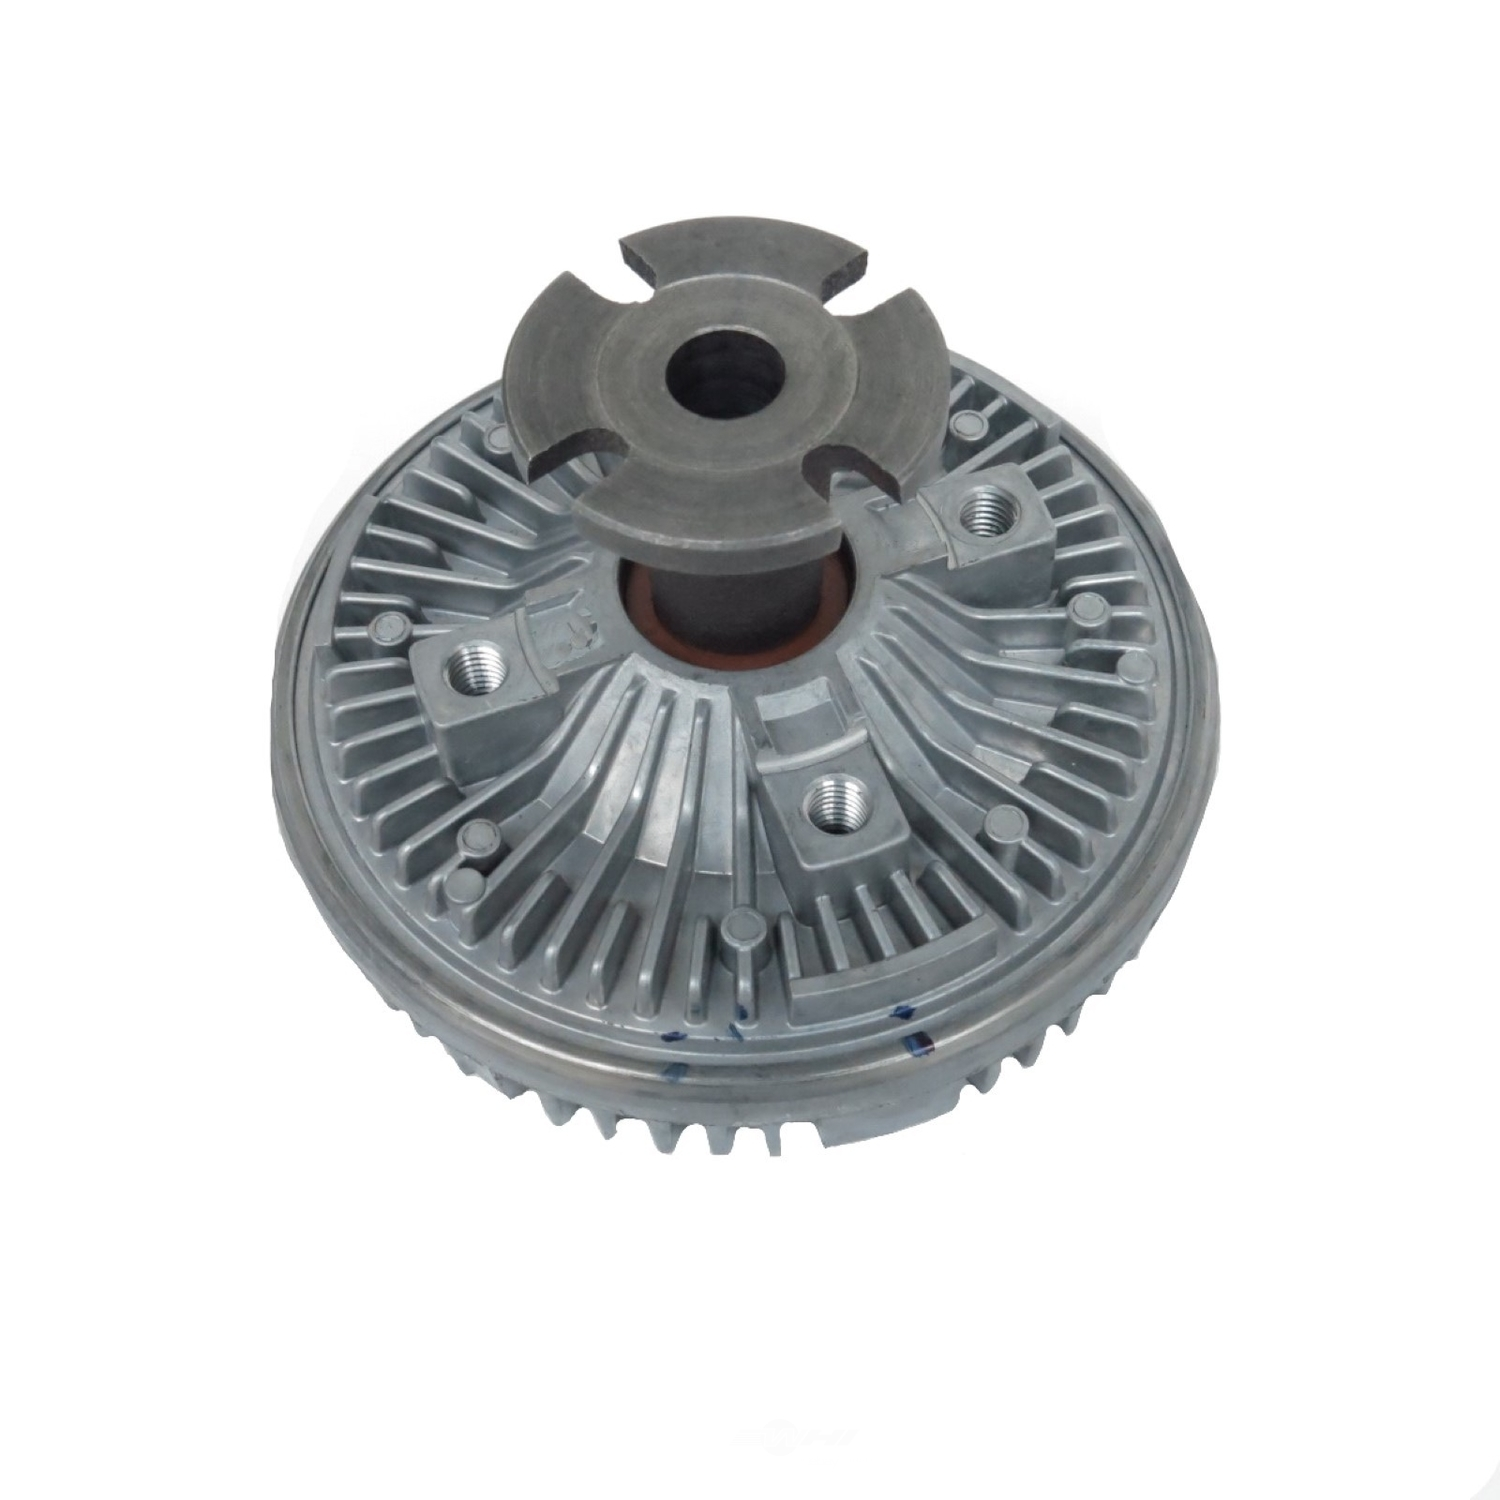 US MOTOR WORKS - Engine Cooling Fan Clutch - DER 22153